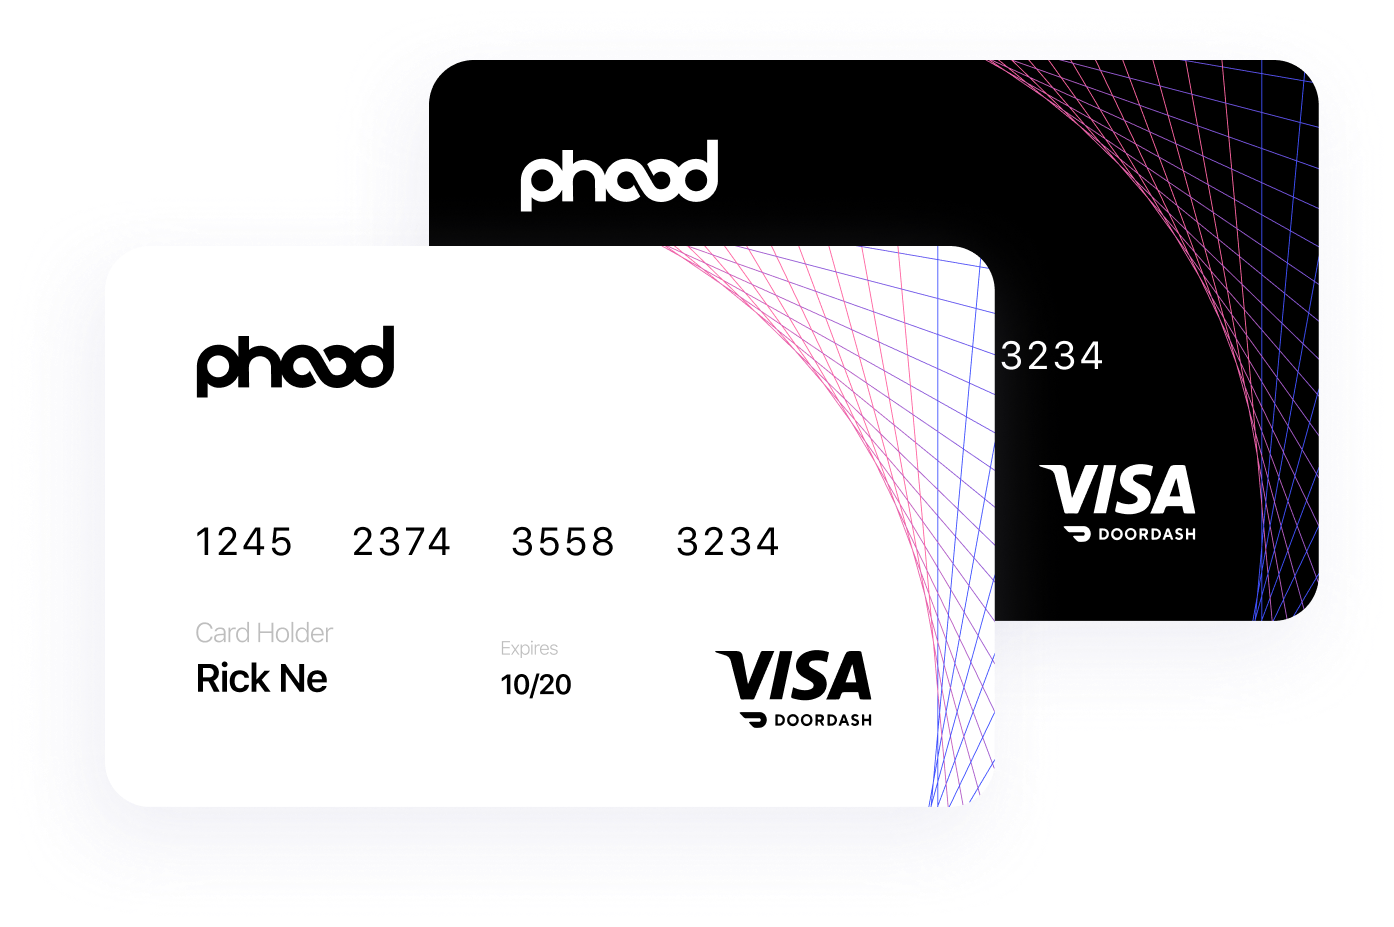 A rendering of the phood debit card.